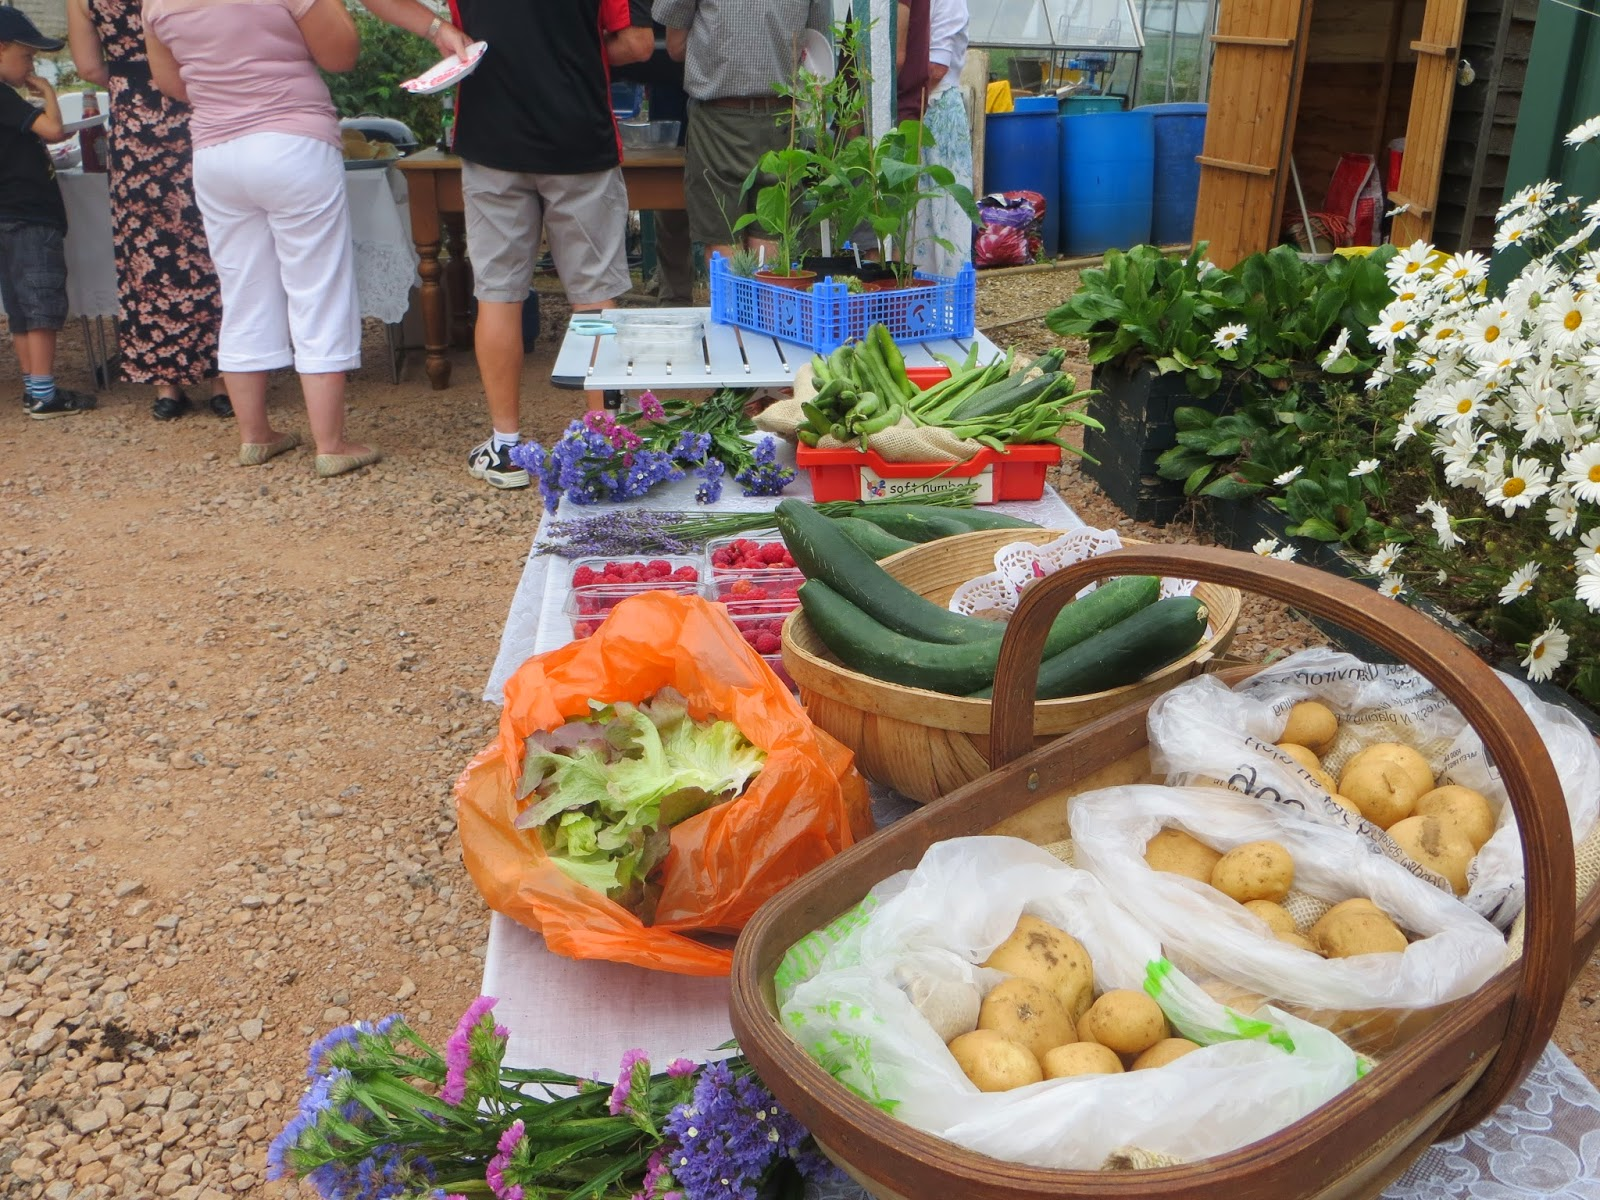 Allotments holders donated produce for sale to attendees.